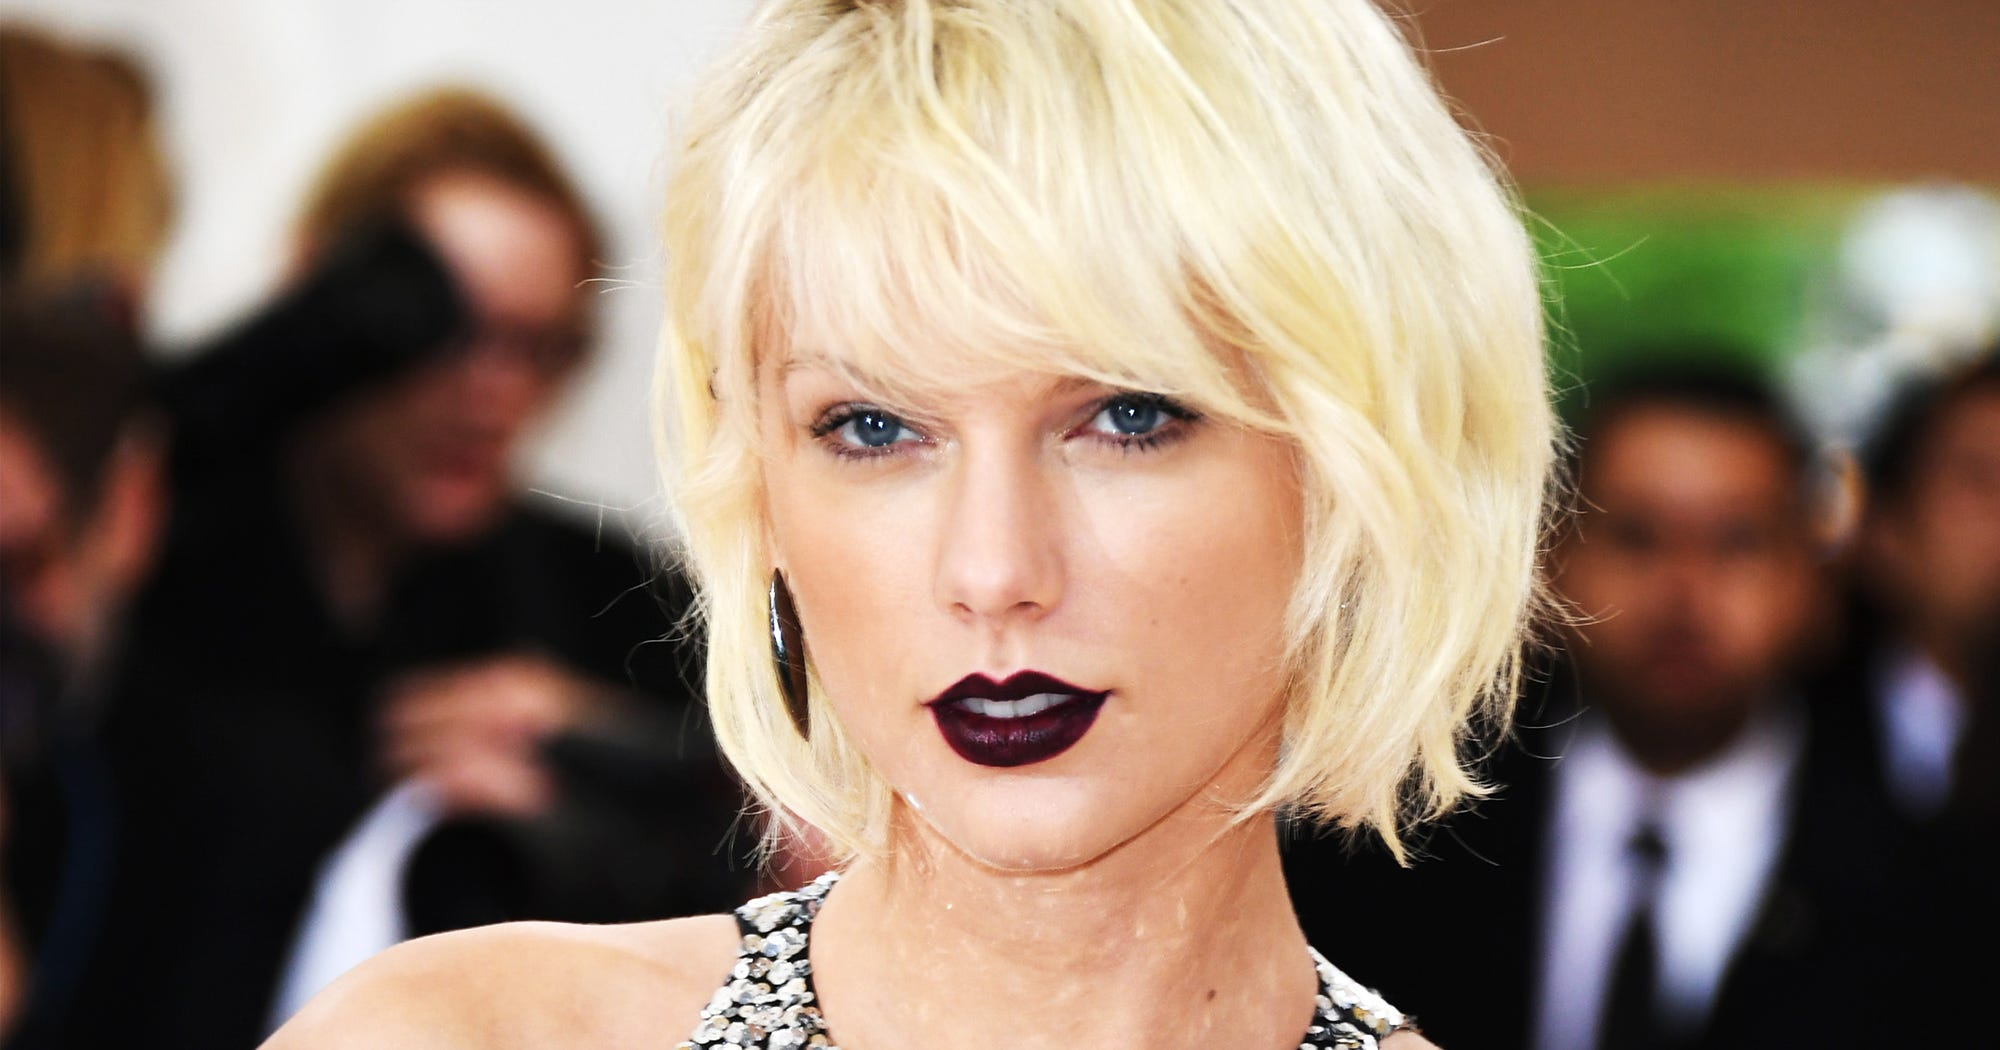 Taylor Swift gets full on naked in her brand new music